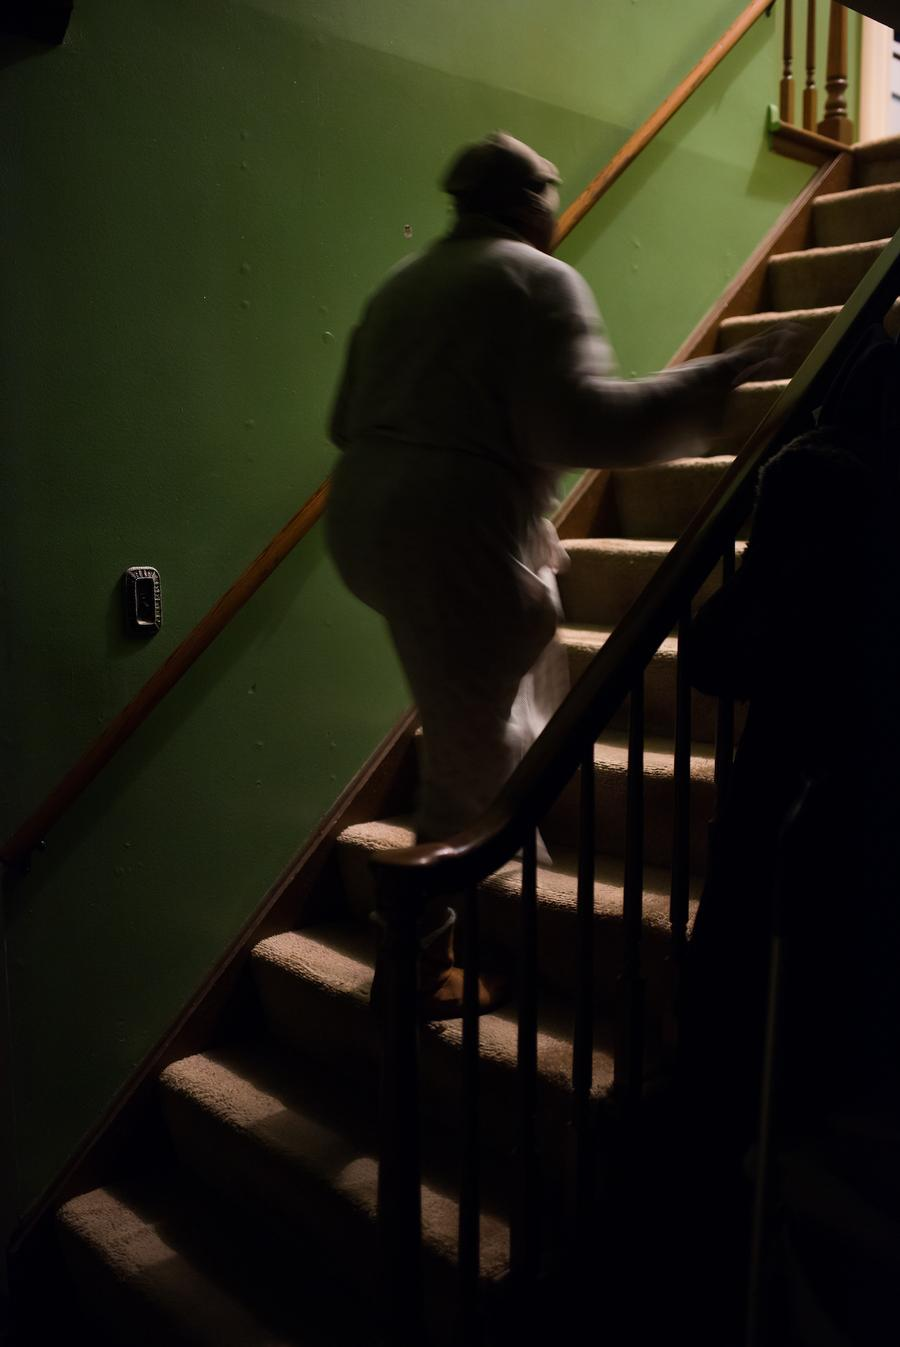 My mother, Michelle Nunn-Thomas walks up the stairs at our home.Taken by Rachel Elise Thomas for WDET